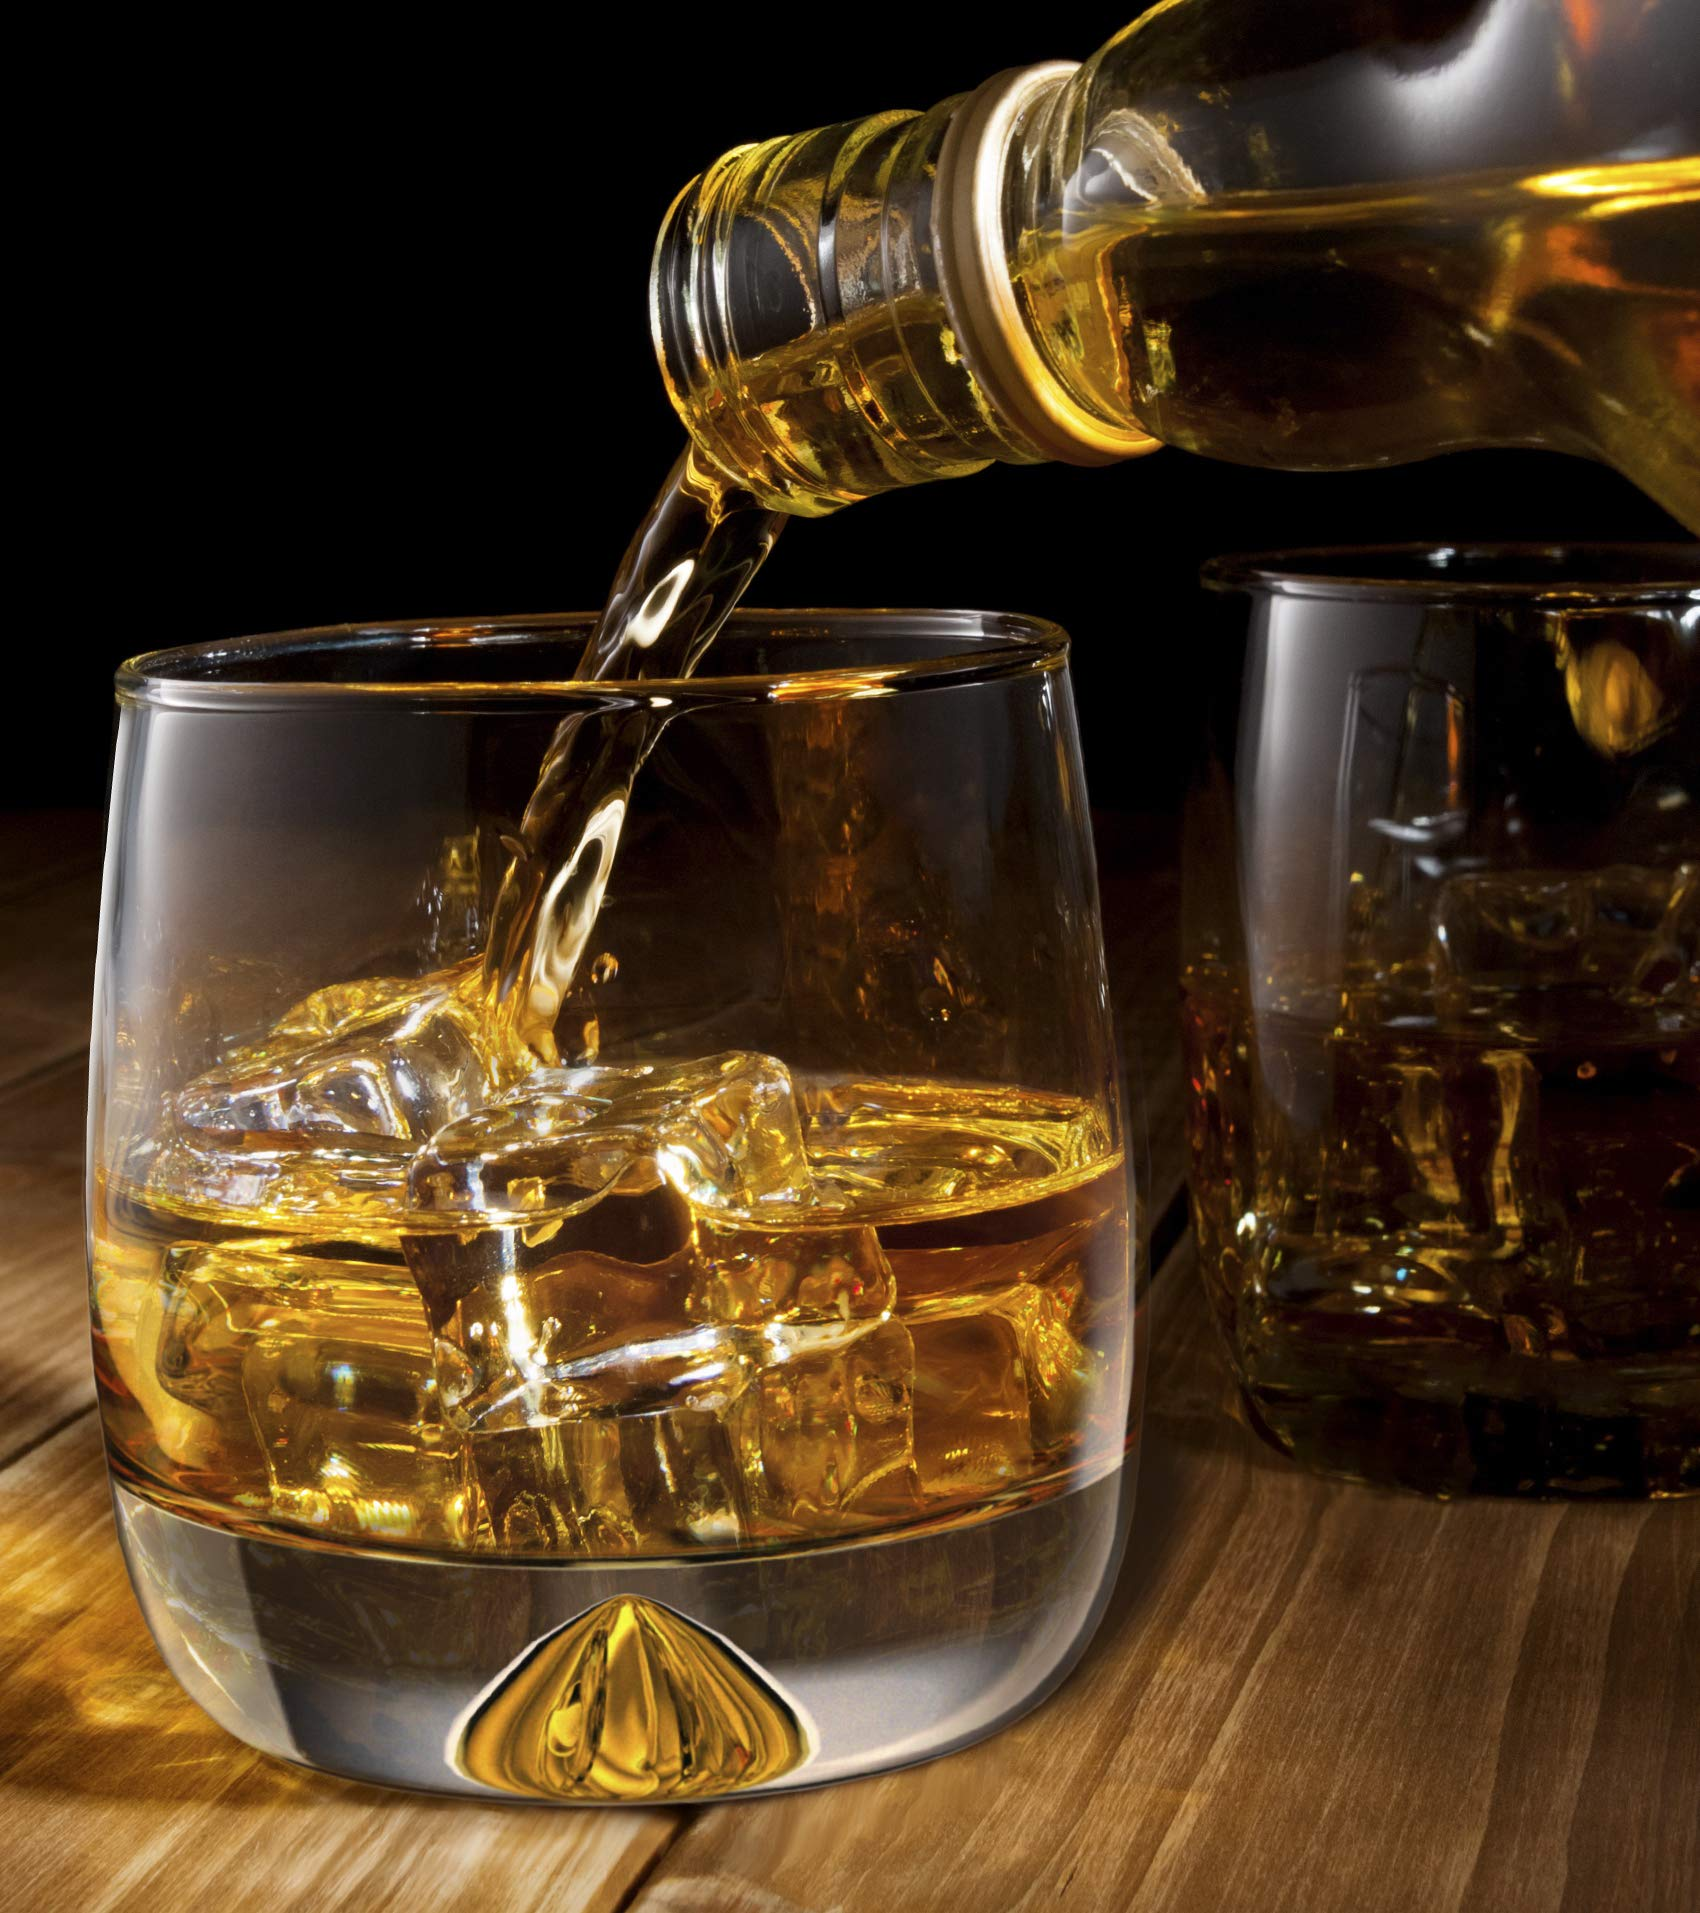 Premium Whiskey Glasses - Large - 12oz Set of 2 - Lead Free Hand Blown Crystal - Thick Weighted Bottom - Seamless Handmade Design - Perfect for Scotch, Bourbon, Manhattans, Old Fashioned's, Cocktails. by Mofado (Image #5)